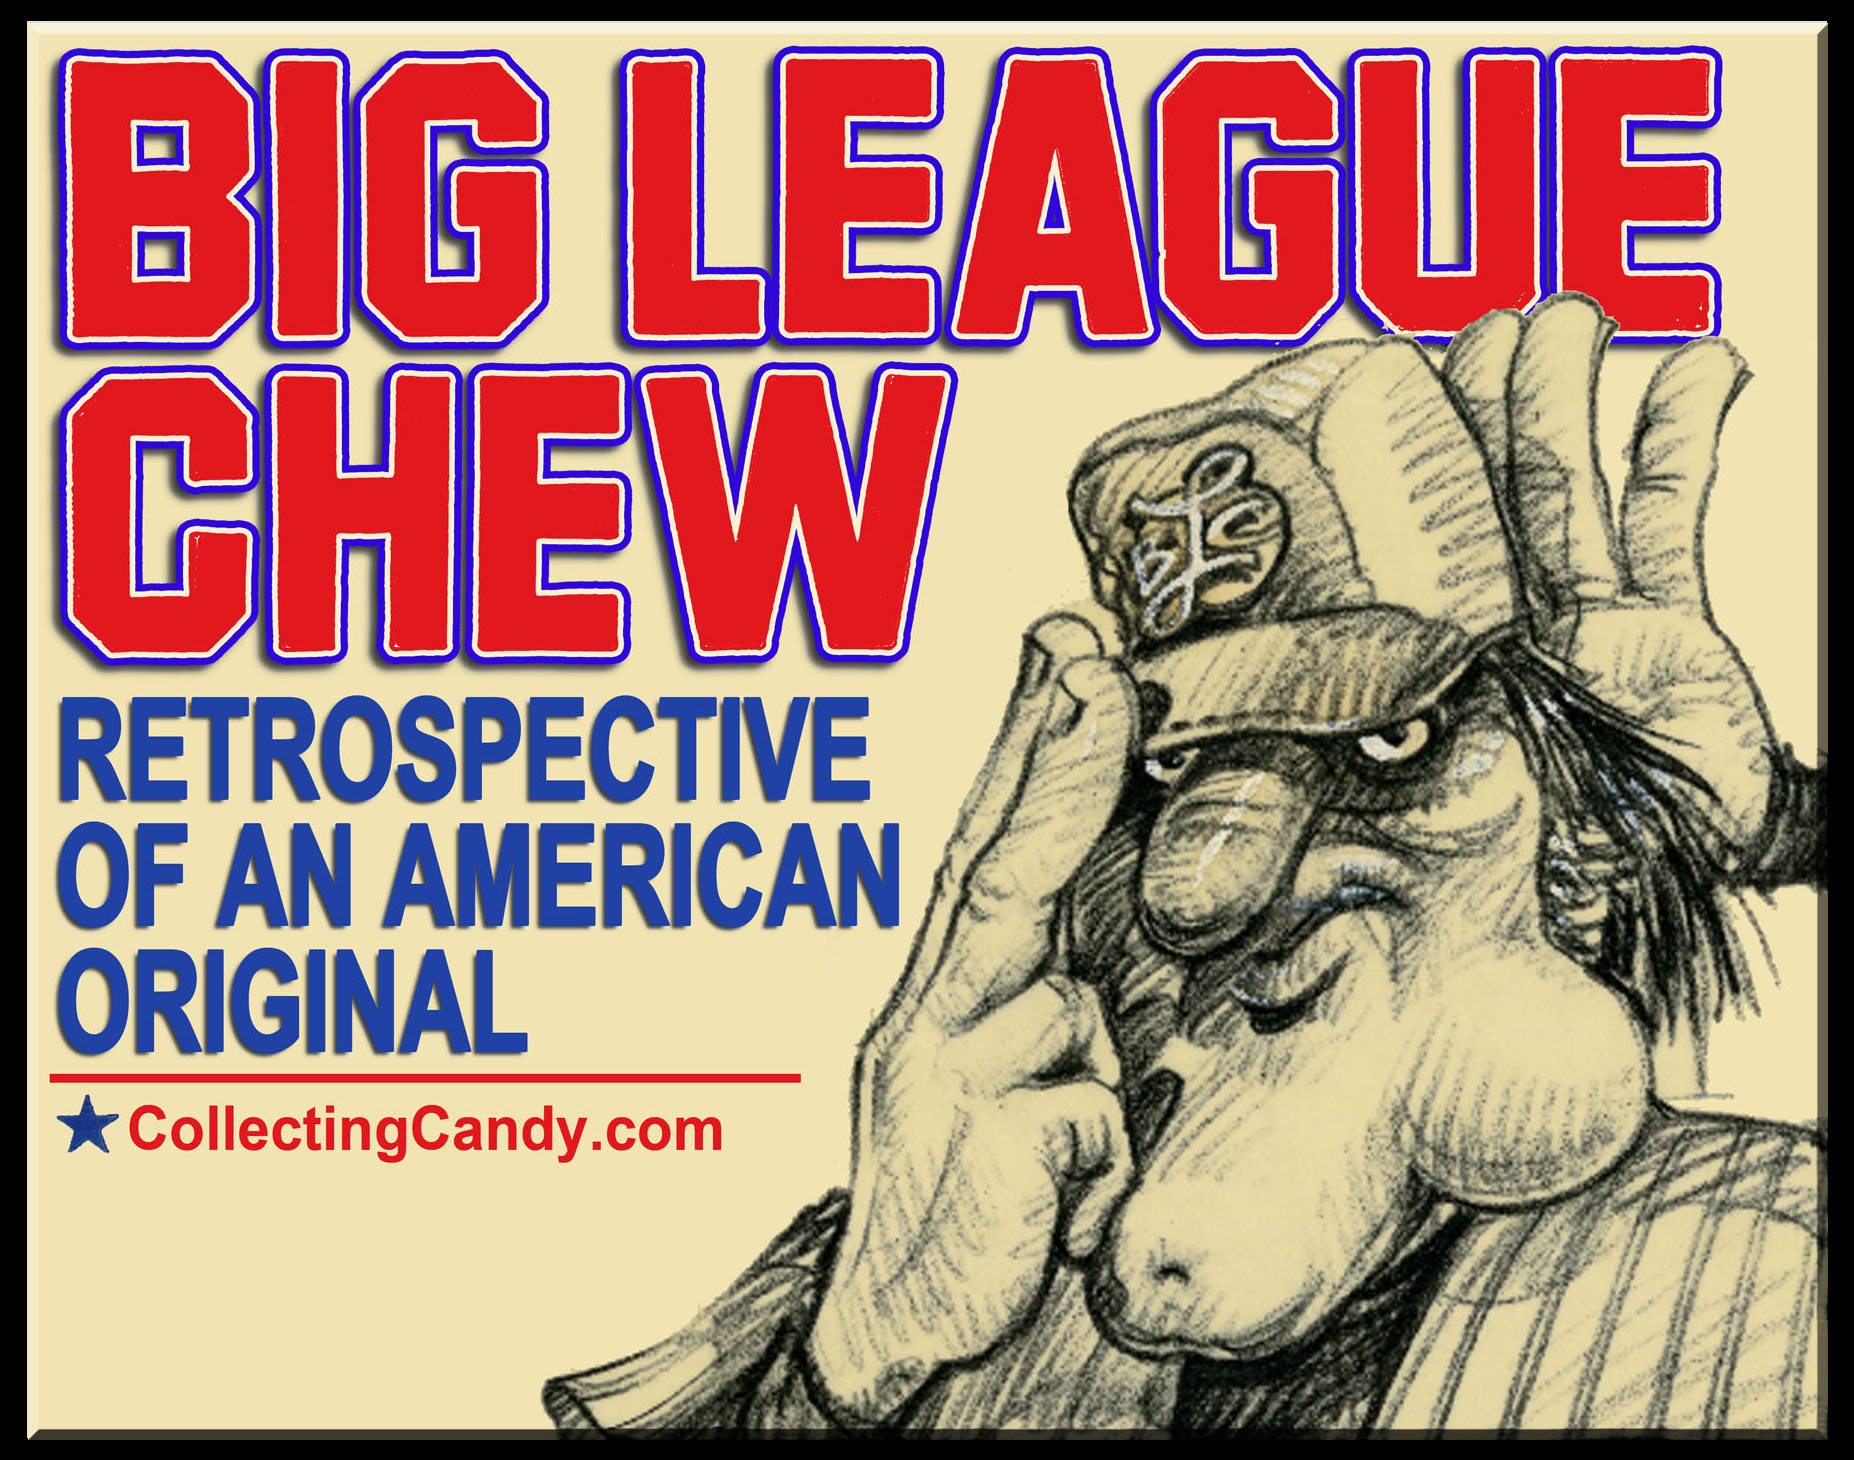 BIg League Chew - Retrospective of an American Original